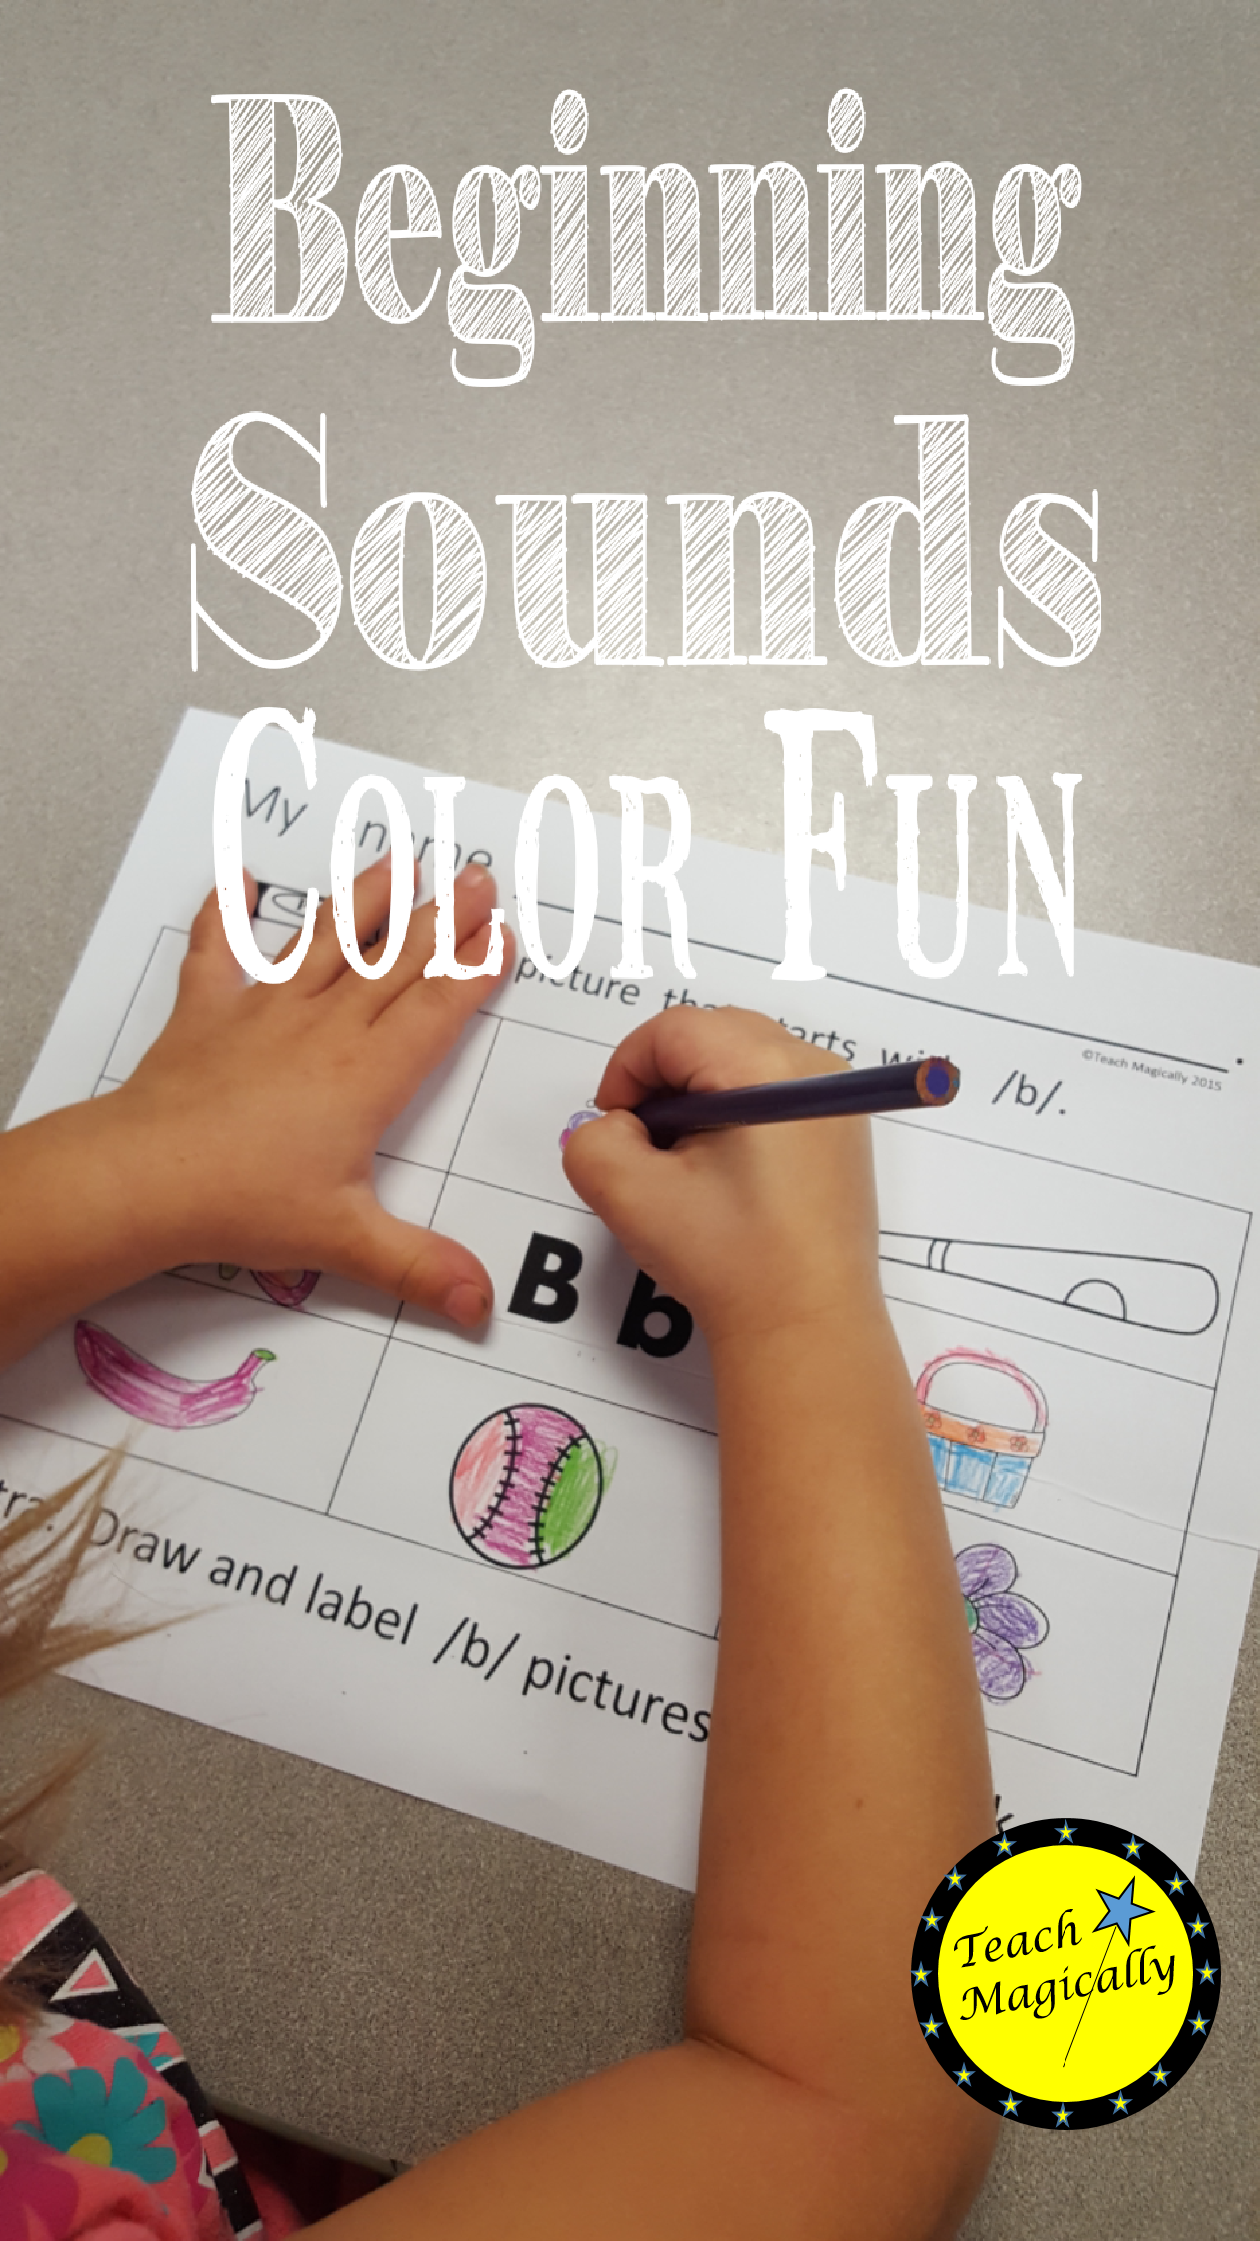 Color Words That Start With Initial Sound Of Target Letter